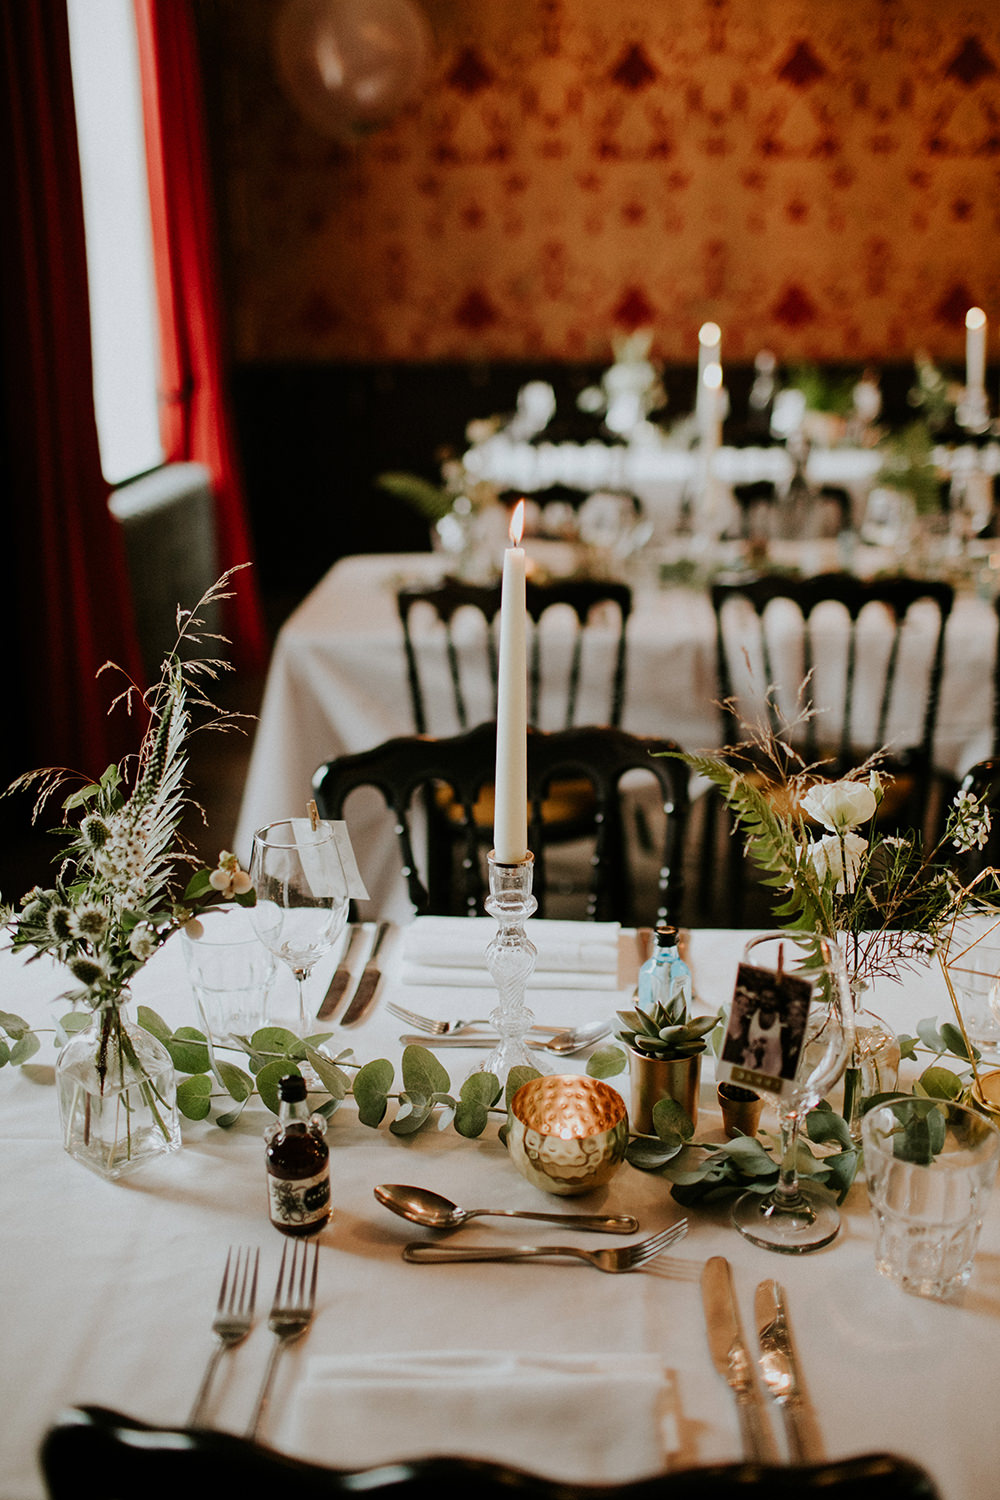 Table Decor Greenery Foliage Eucalyptus Swag Garland Runner Bell Ticehurst Wedding Irene Yap Photography